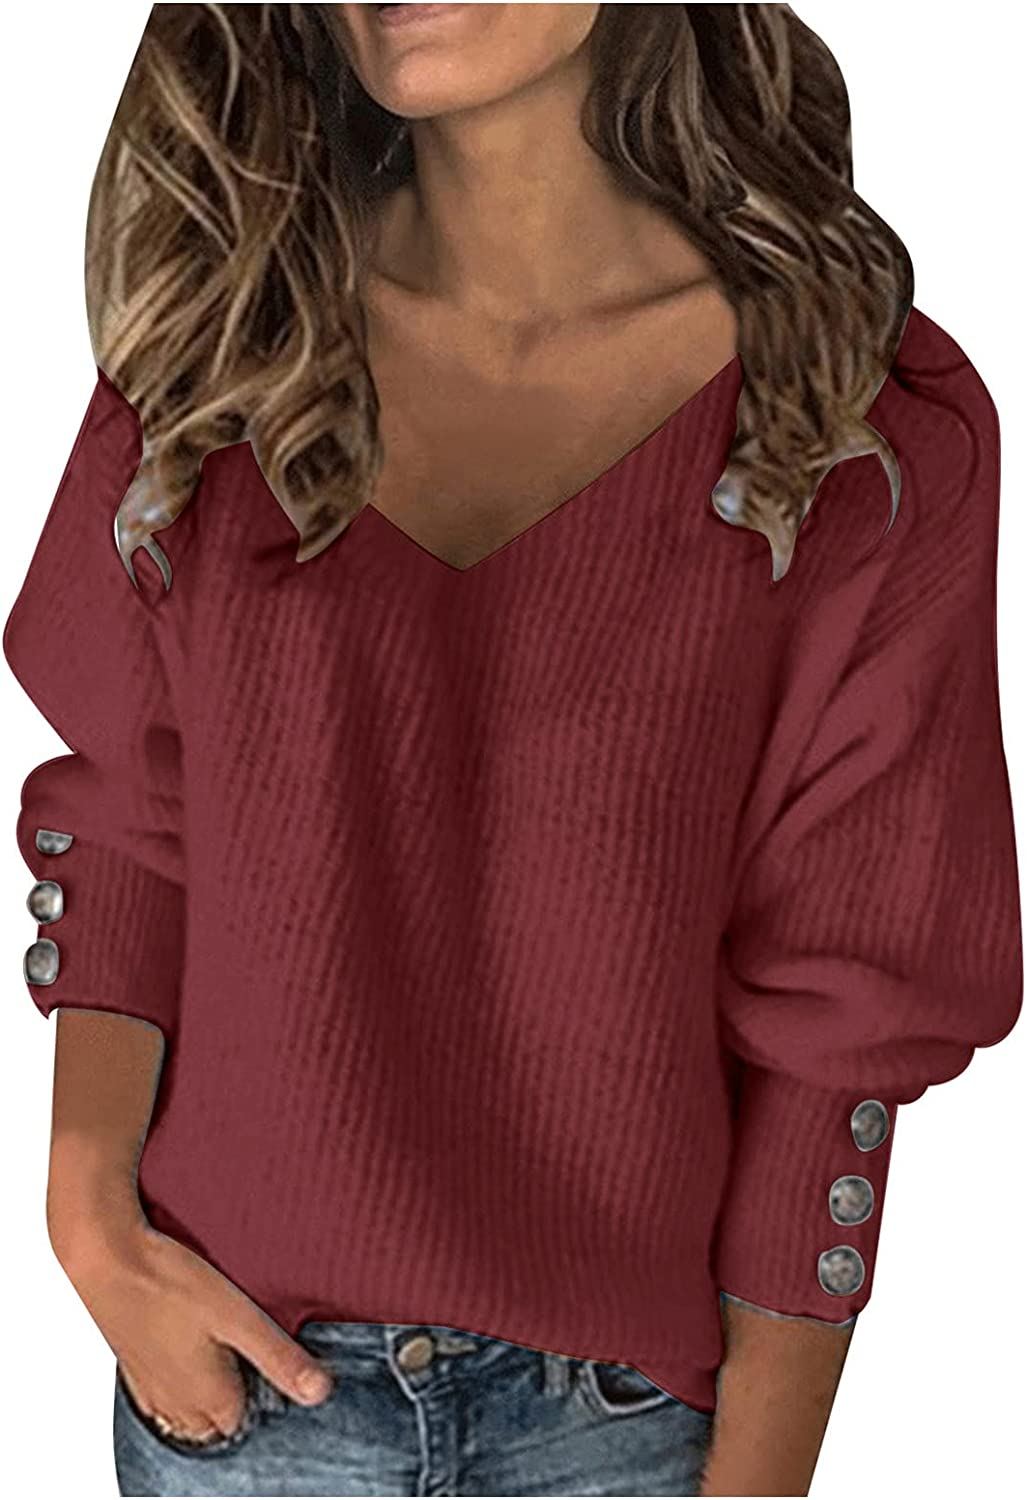 Oversized Sweatshirt for Women Vintage Sexy V Neck Long Sleeve Button Down Solid Pullover Loose Trendy Top With Design